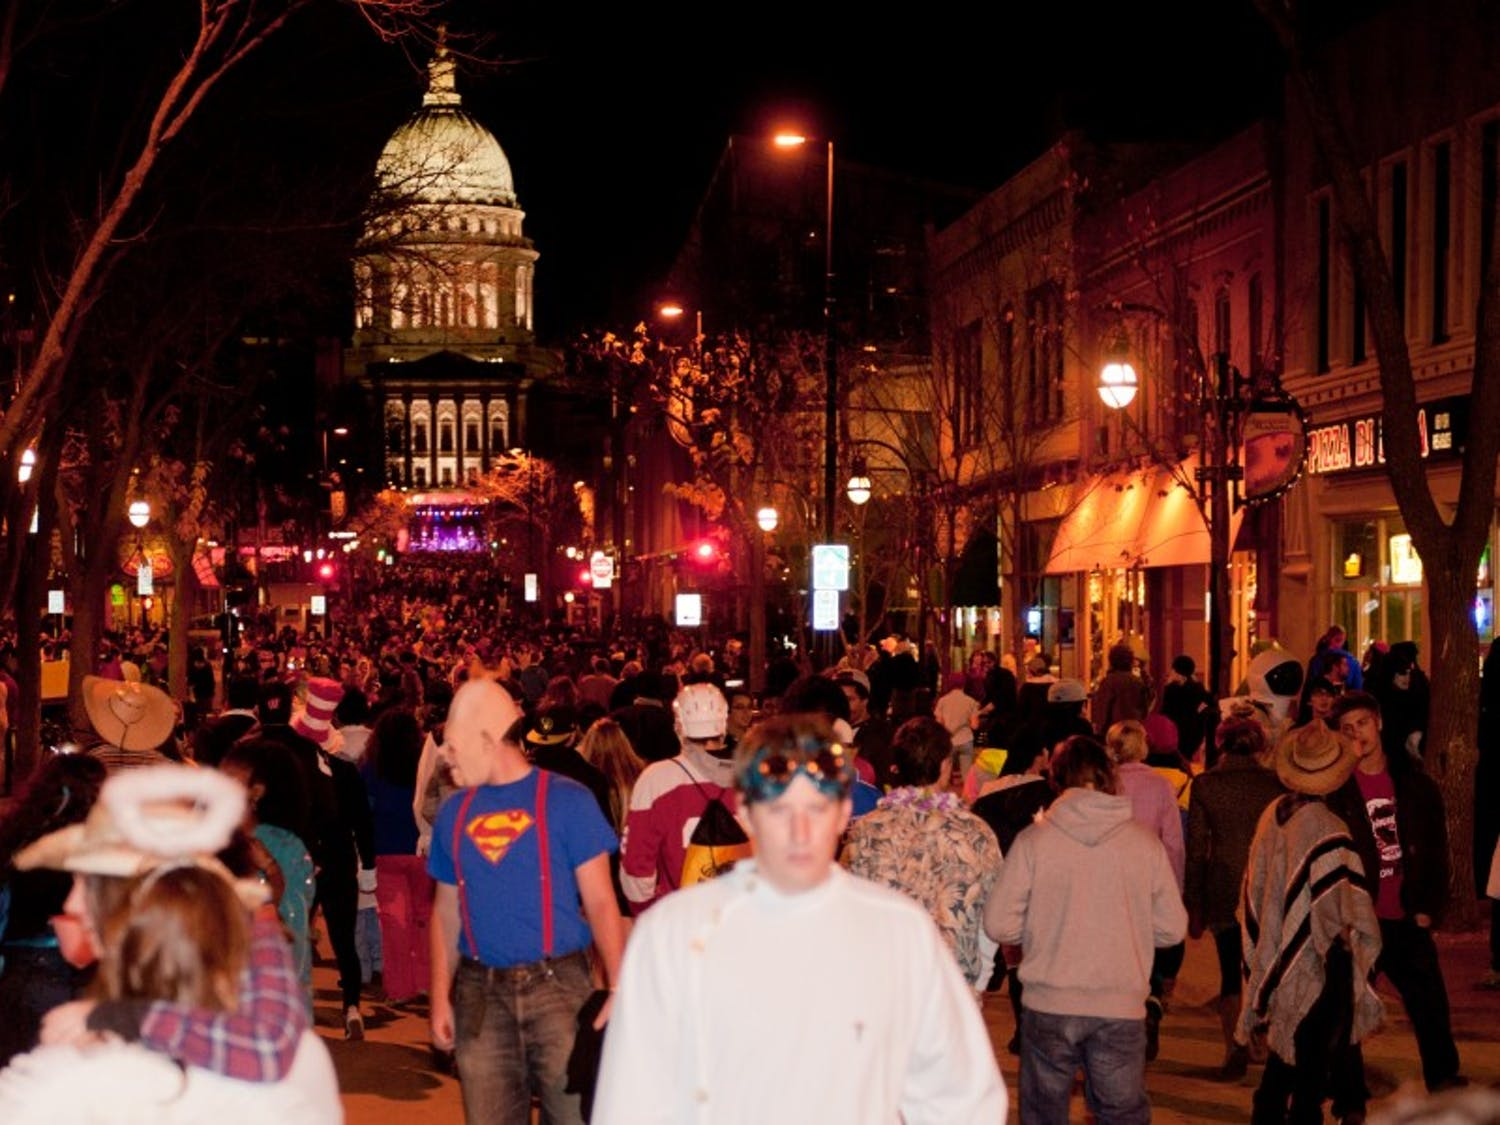 Madison citizens gather for Halloween festivities on State Street in 2012 for the 7th year of Freakfest.